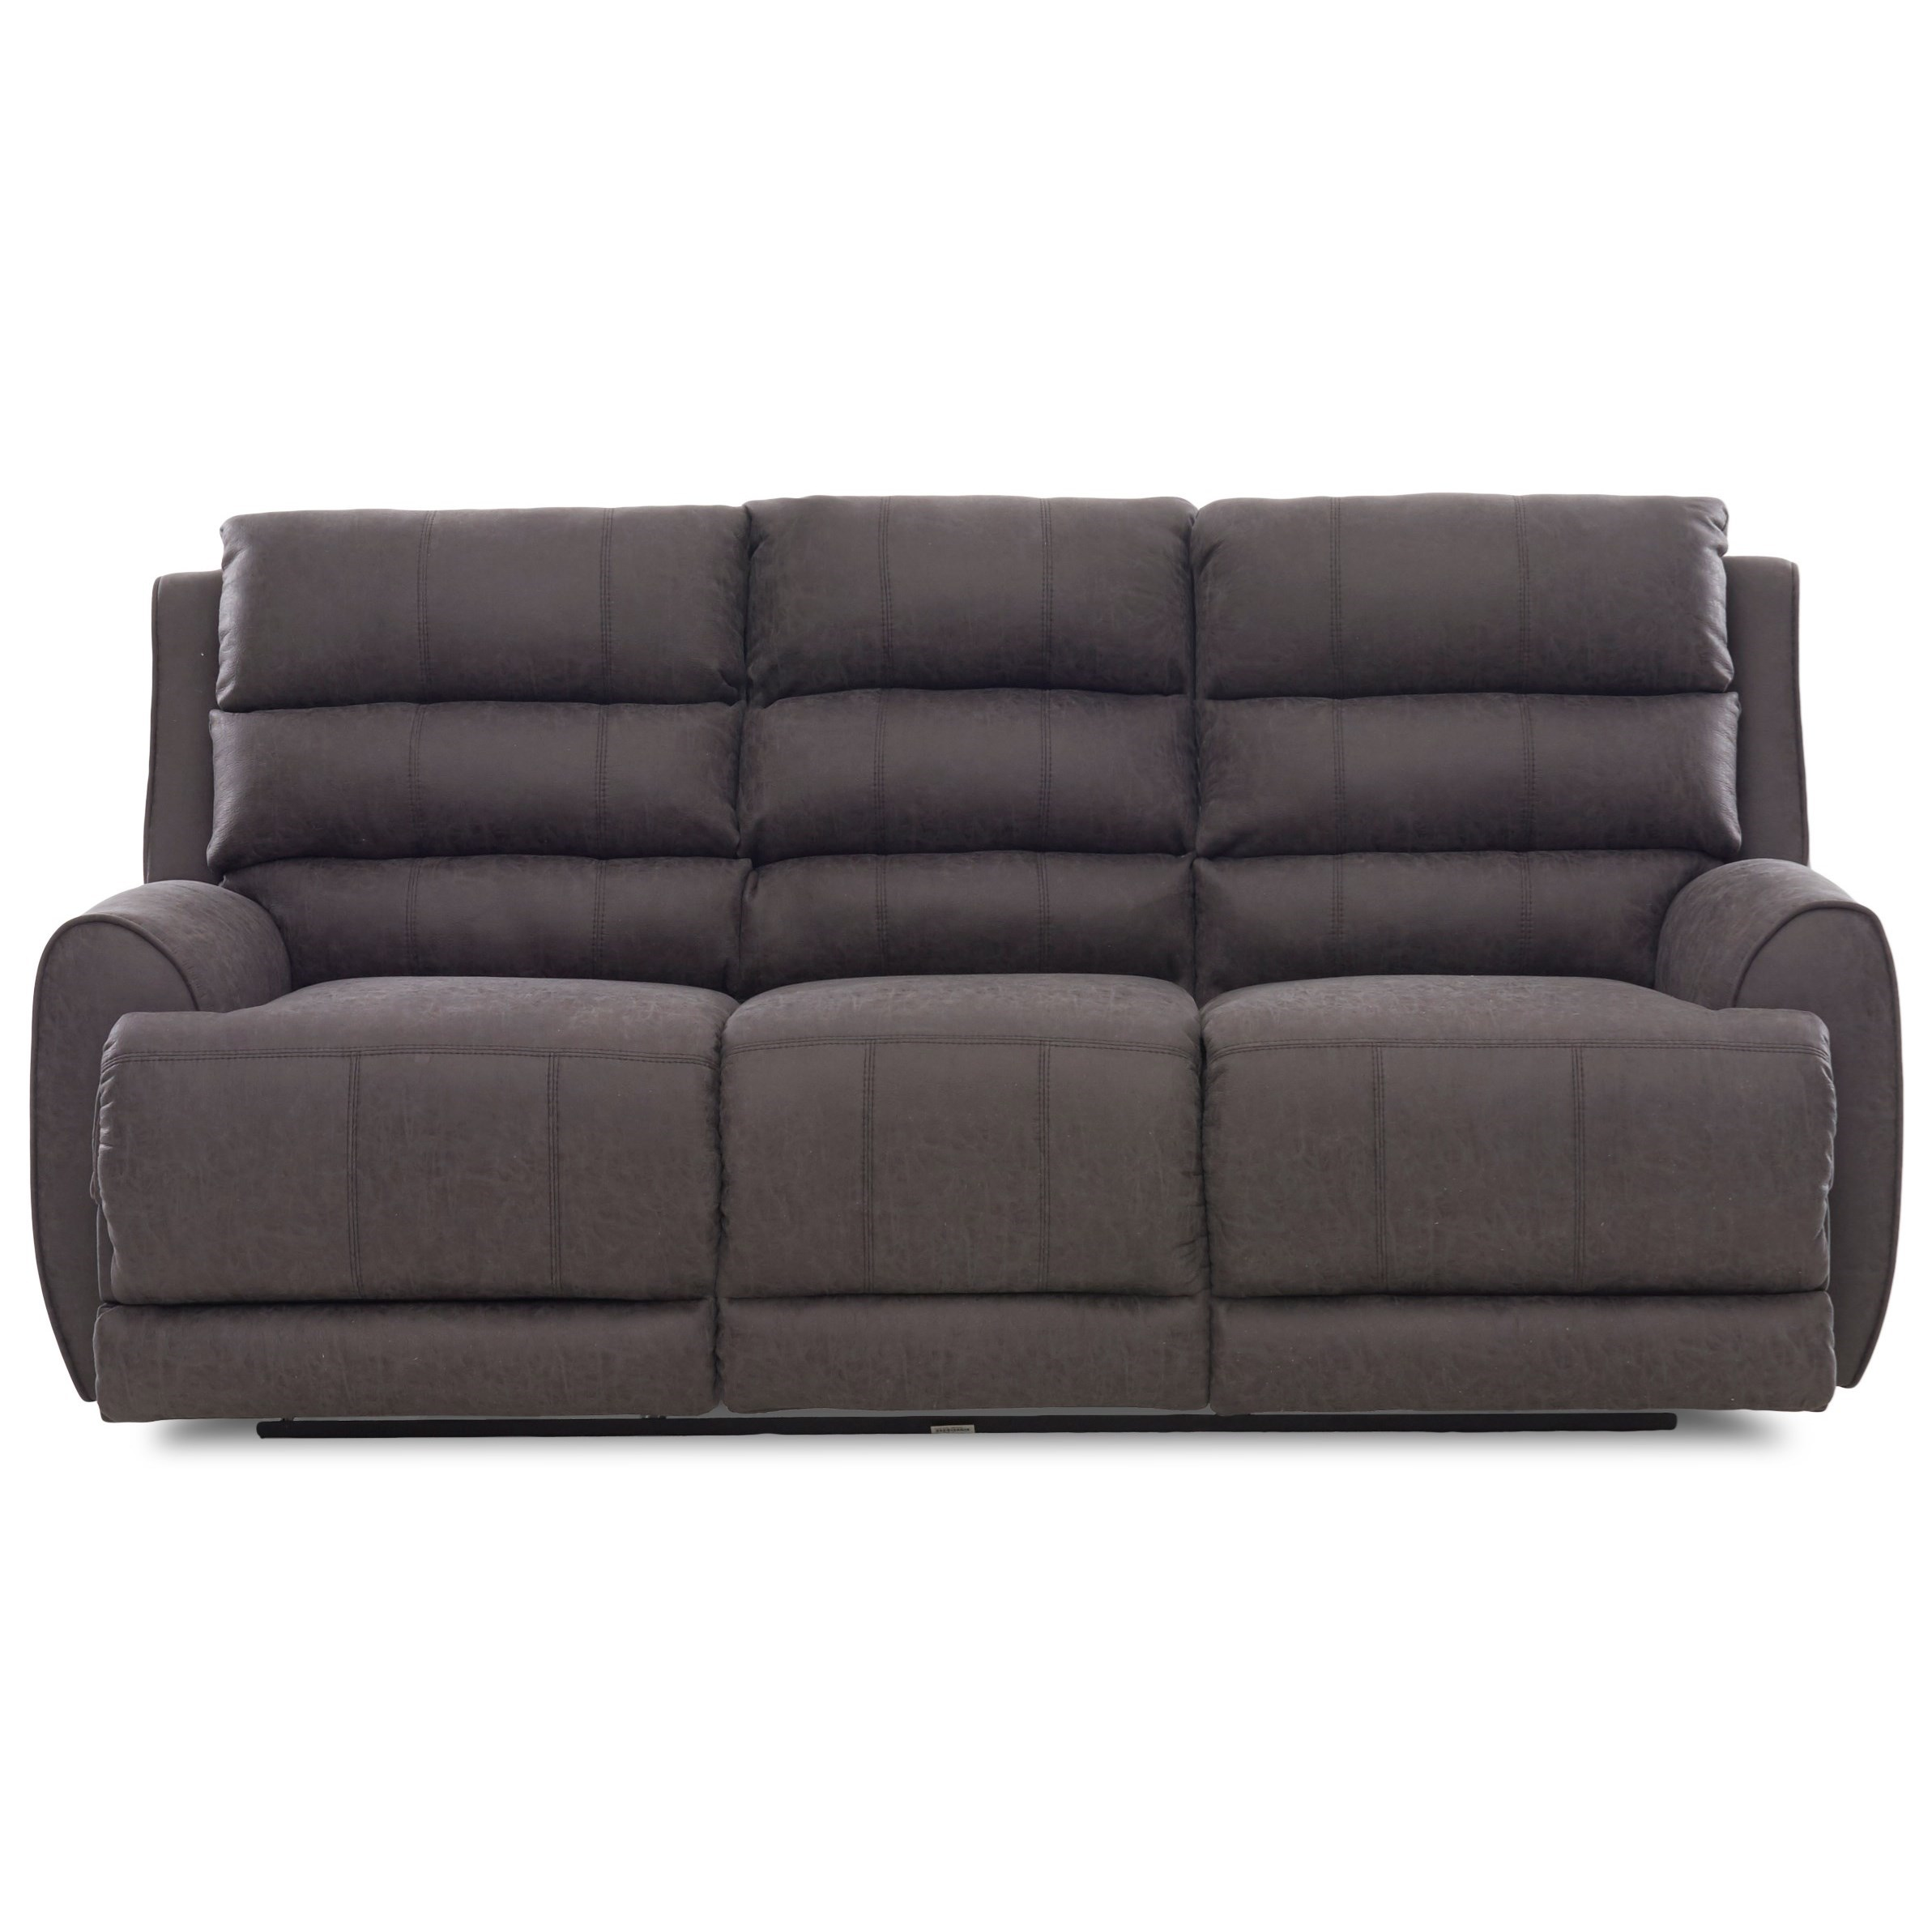 Contemporary Power Reclining Sofa with Power Headrest/Lumbar, USB Ports, Bluetooth Functionality